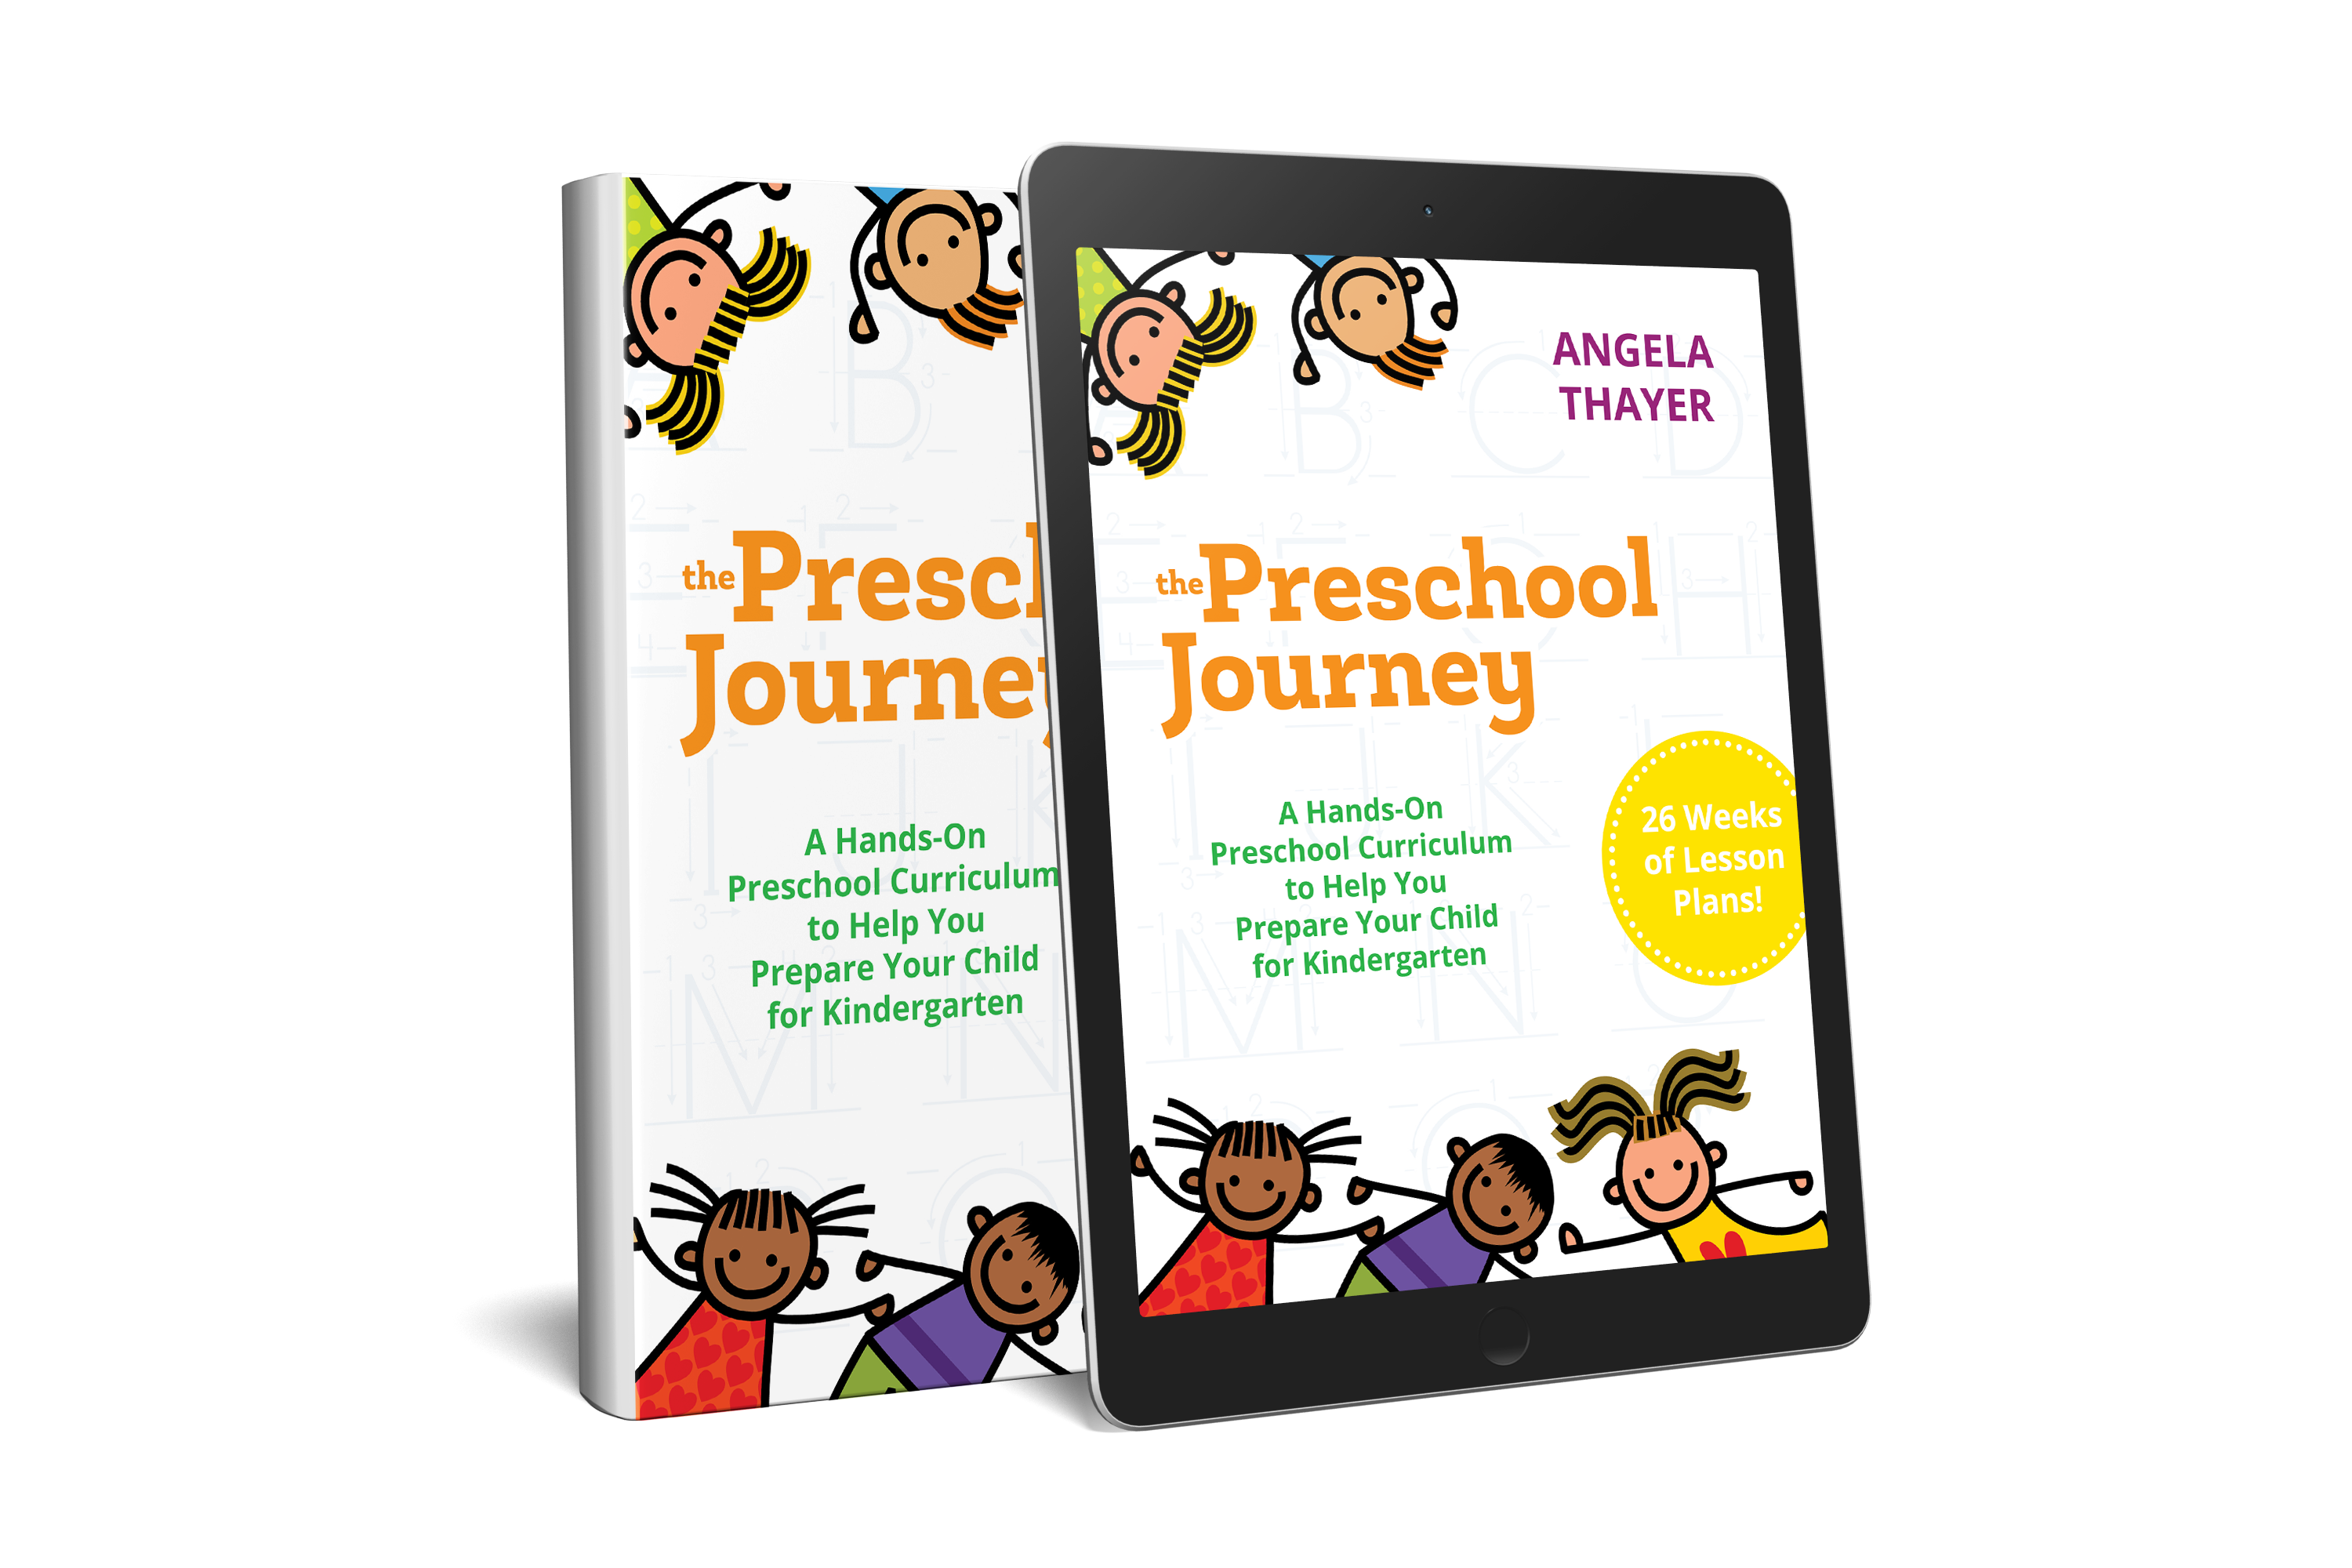 preschool curriculum content Schooling volume 2, number 1, 2011 1 curriculum models for preschool education: theories and approaches to learning in the early years fred c lunenburg.